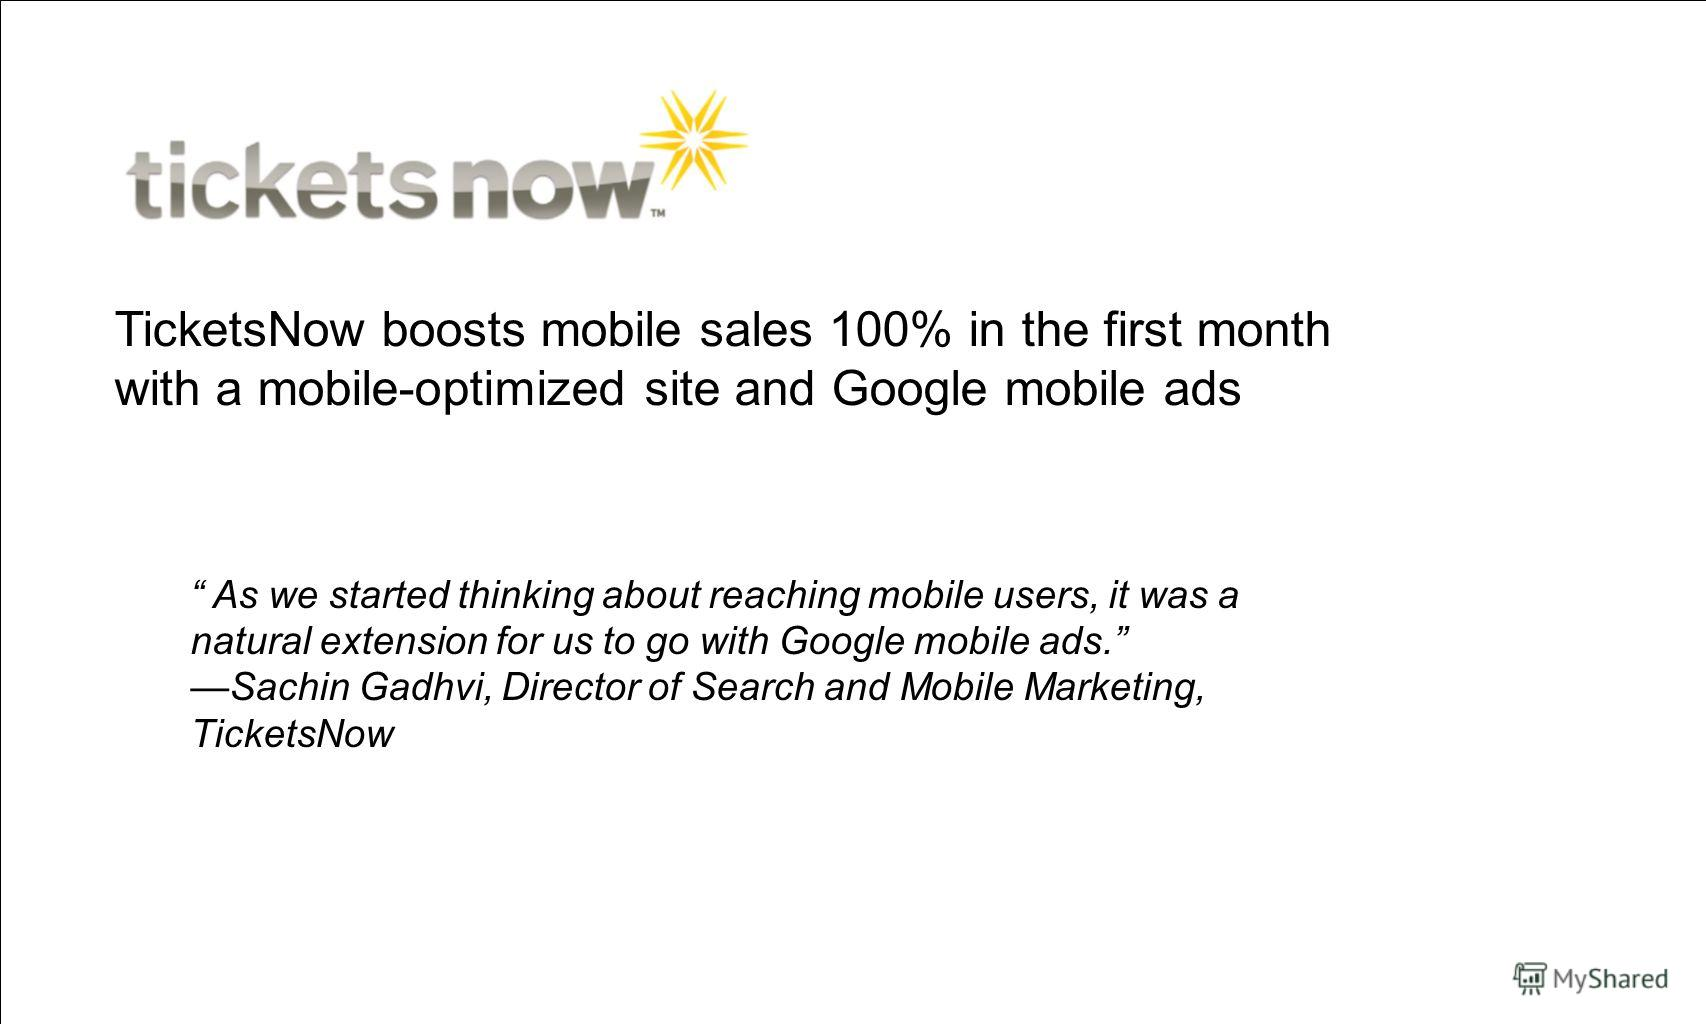 TicketsNow boosts mobile sales 100% in the first month with a mobile-optimized site and Google mobile ads As we started thinking about reaching mobile users, it was a natural extension for us to go with Google mobile ads. Sachin Gadhvi, Director of S